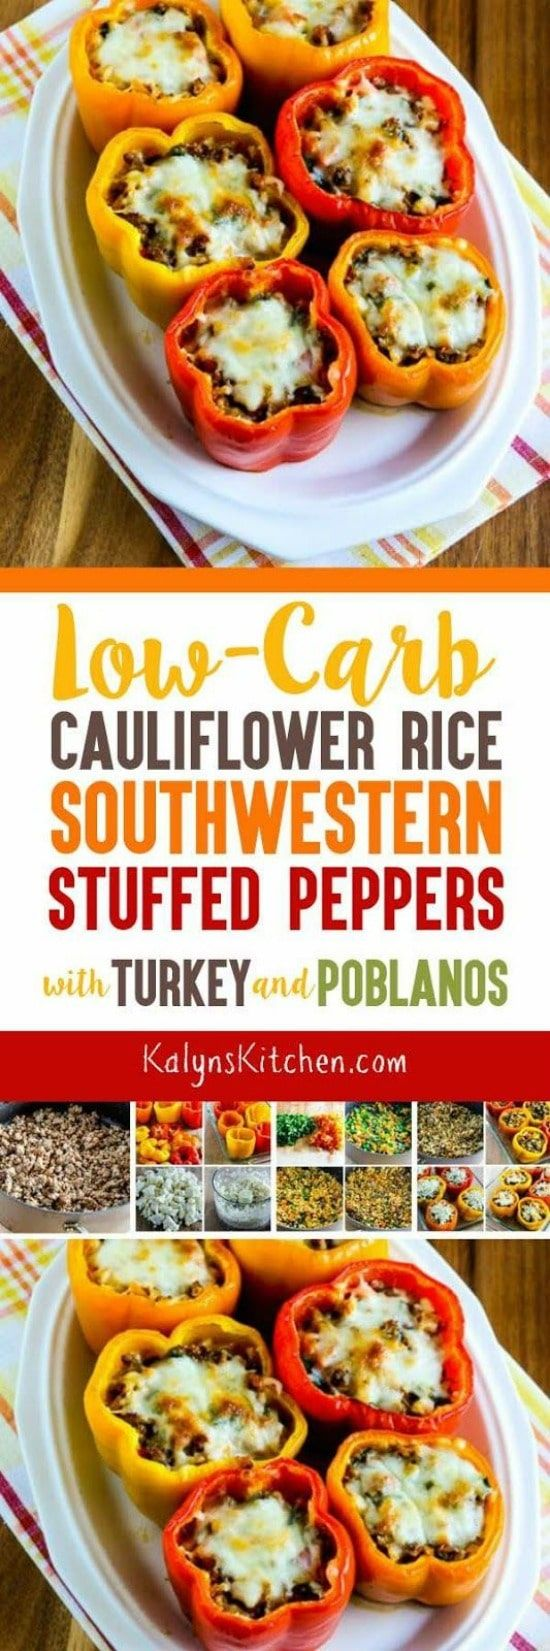 Low-Carb Cauliflower Rice Southwestern Stuffed Peppers with Turkey and Poblanos